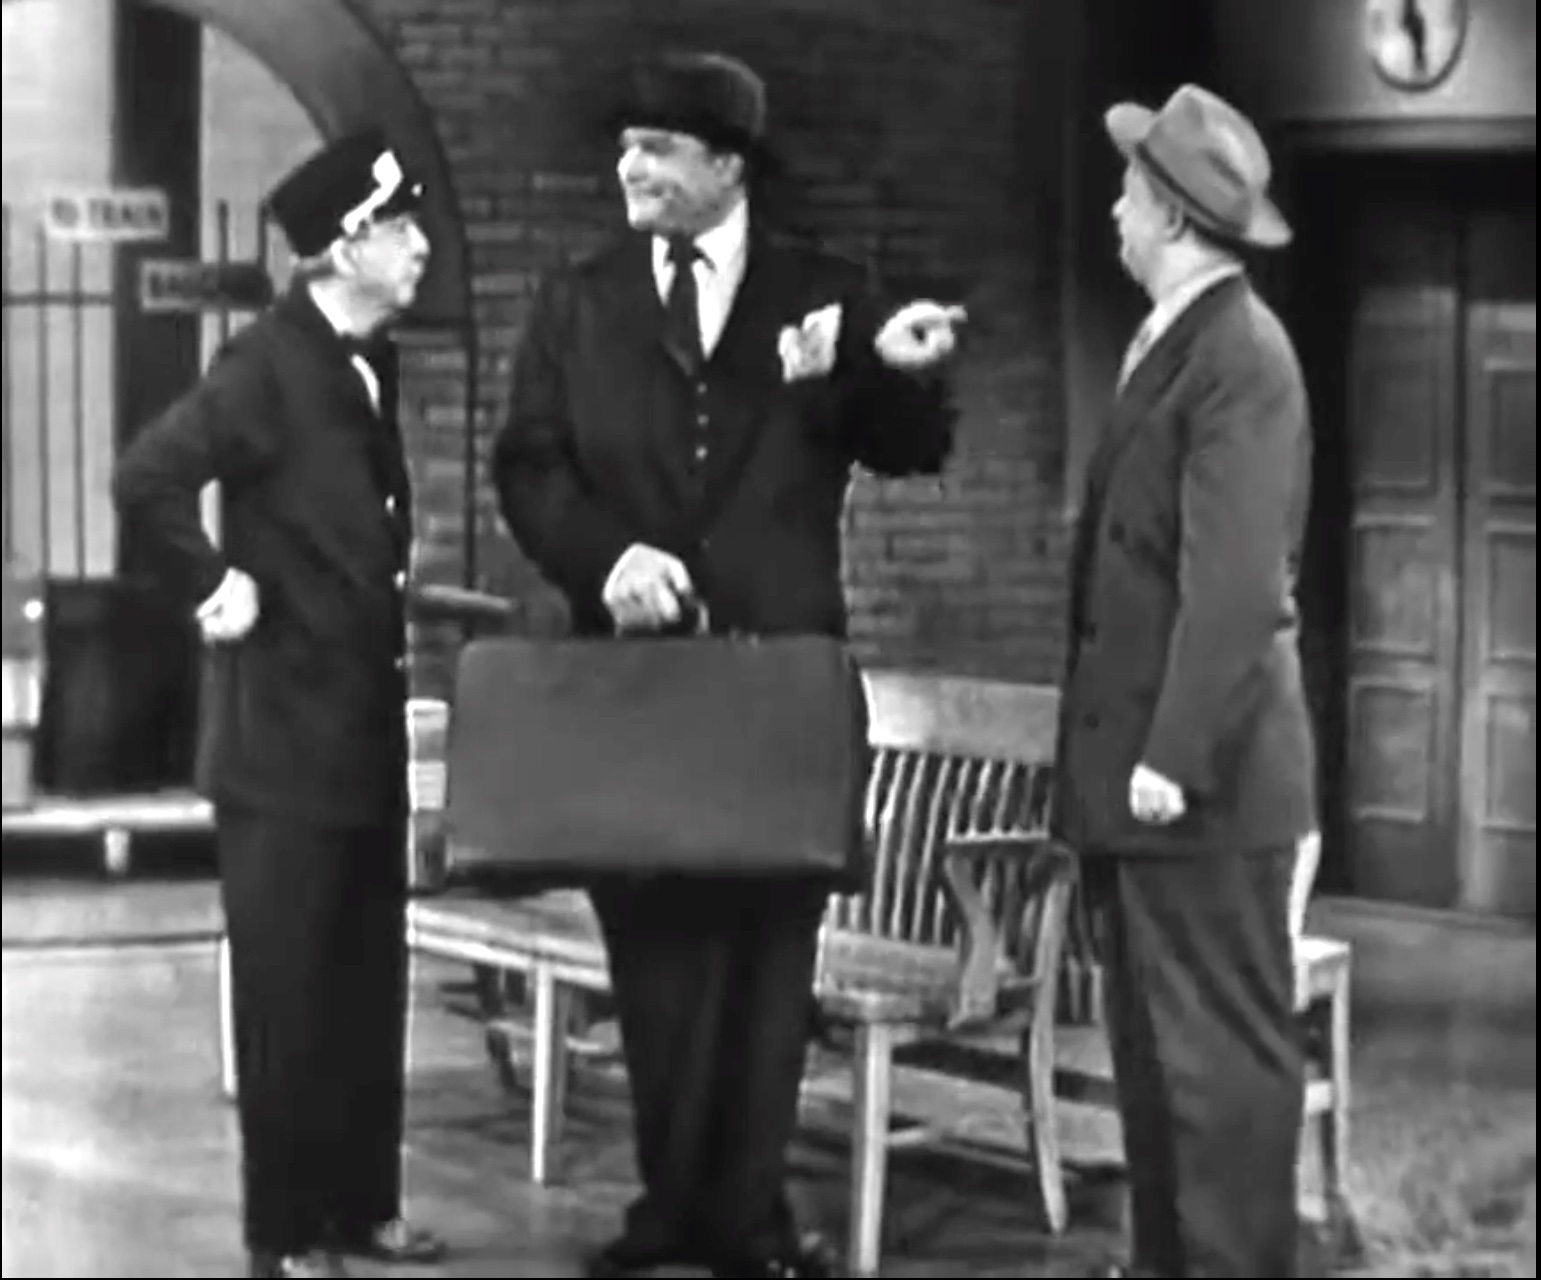 The Railroad Station - where Willie Lump Lump causes chaos for all involved!